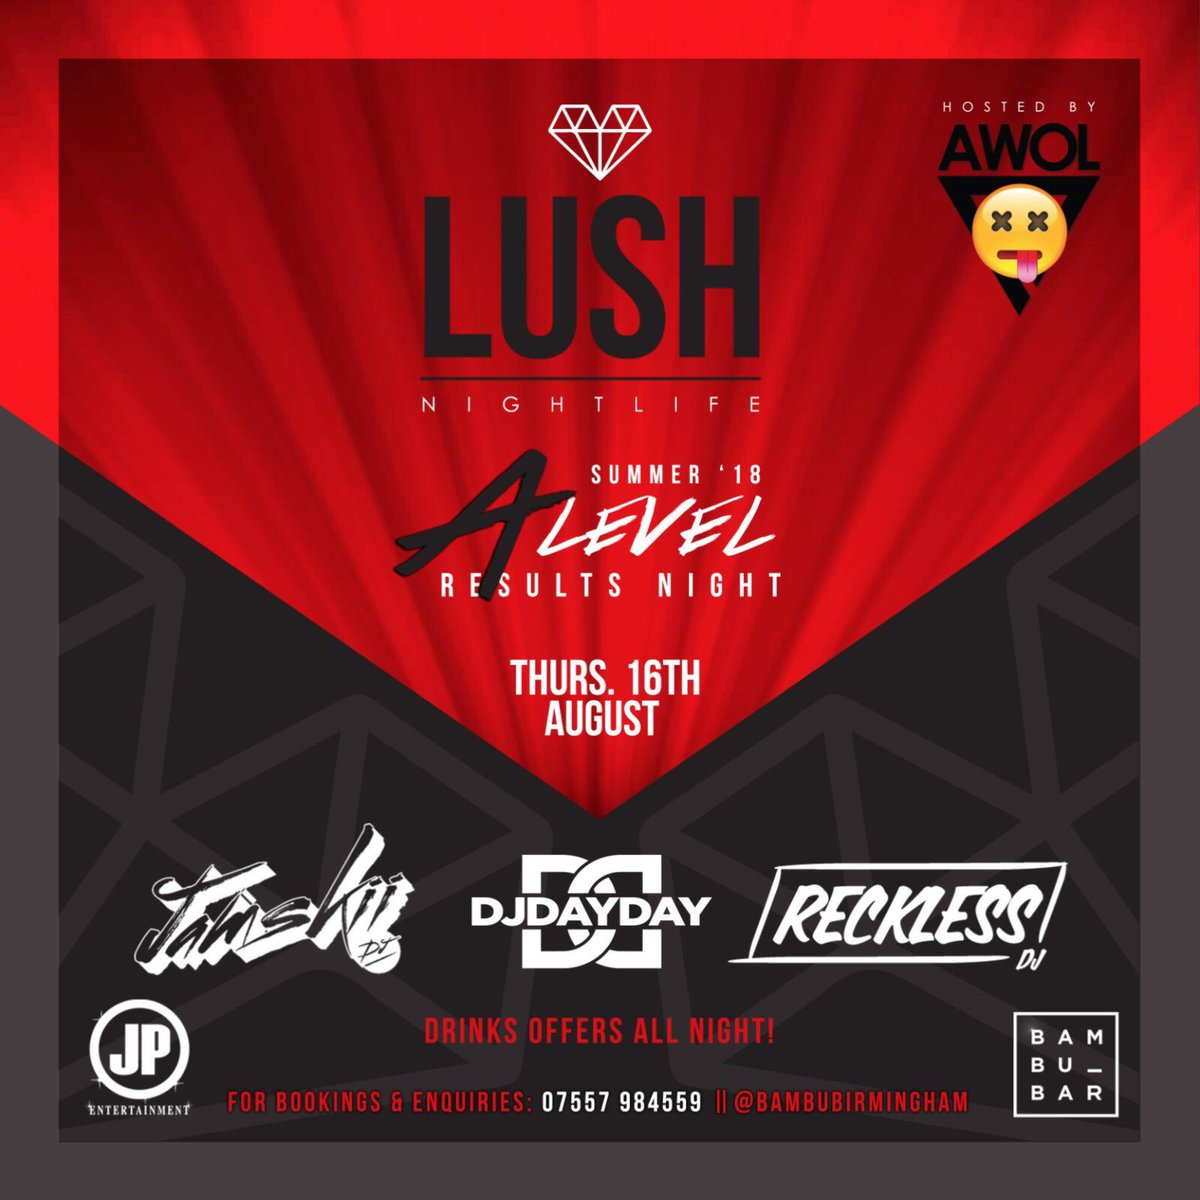 Not long now till Thursday   @AWOLThursdays X @LUSH_BHAM are joining together to cause some absolute carnage at @BambuBirmingham   A-Level Results Night 18'  @JAMSKIIDJ   @DJDAYDAY_   @RECKLESSDJ_   @DJDOMBRYAN   Drinks offers ALL NIGHT!   For Guestlist Or Enquires <br>http://pic.twitter.com/XNUS4ZDalt